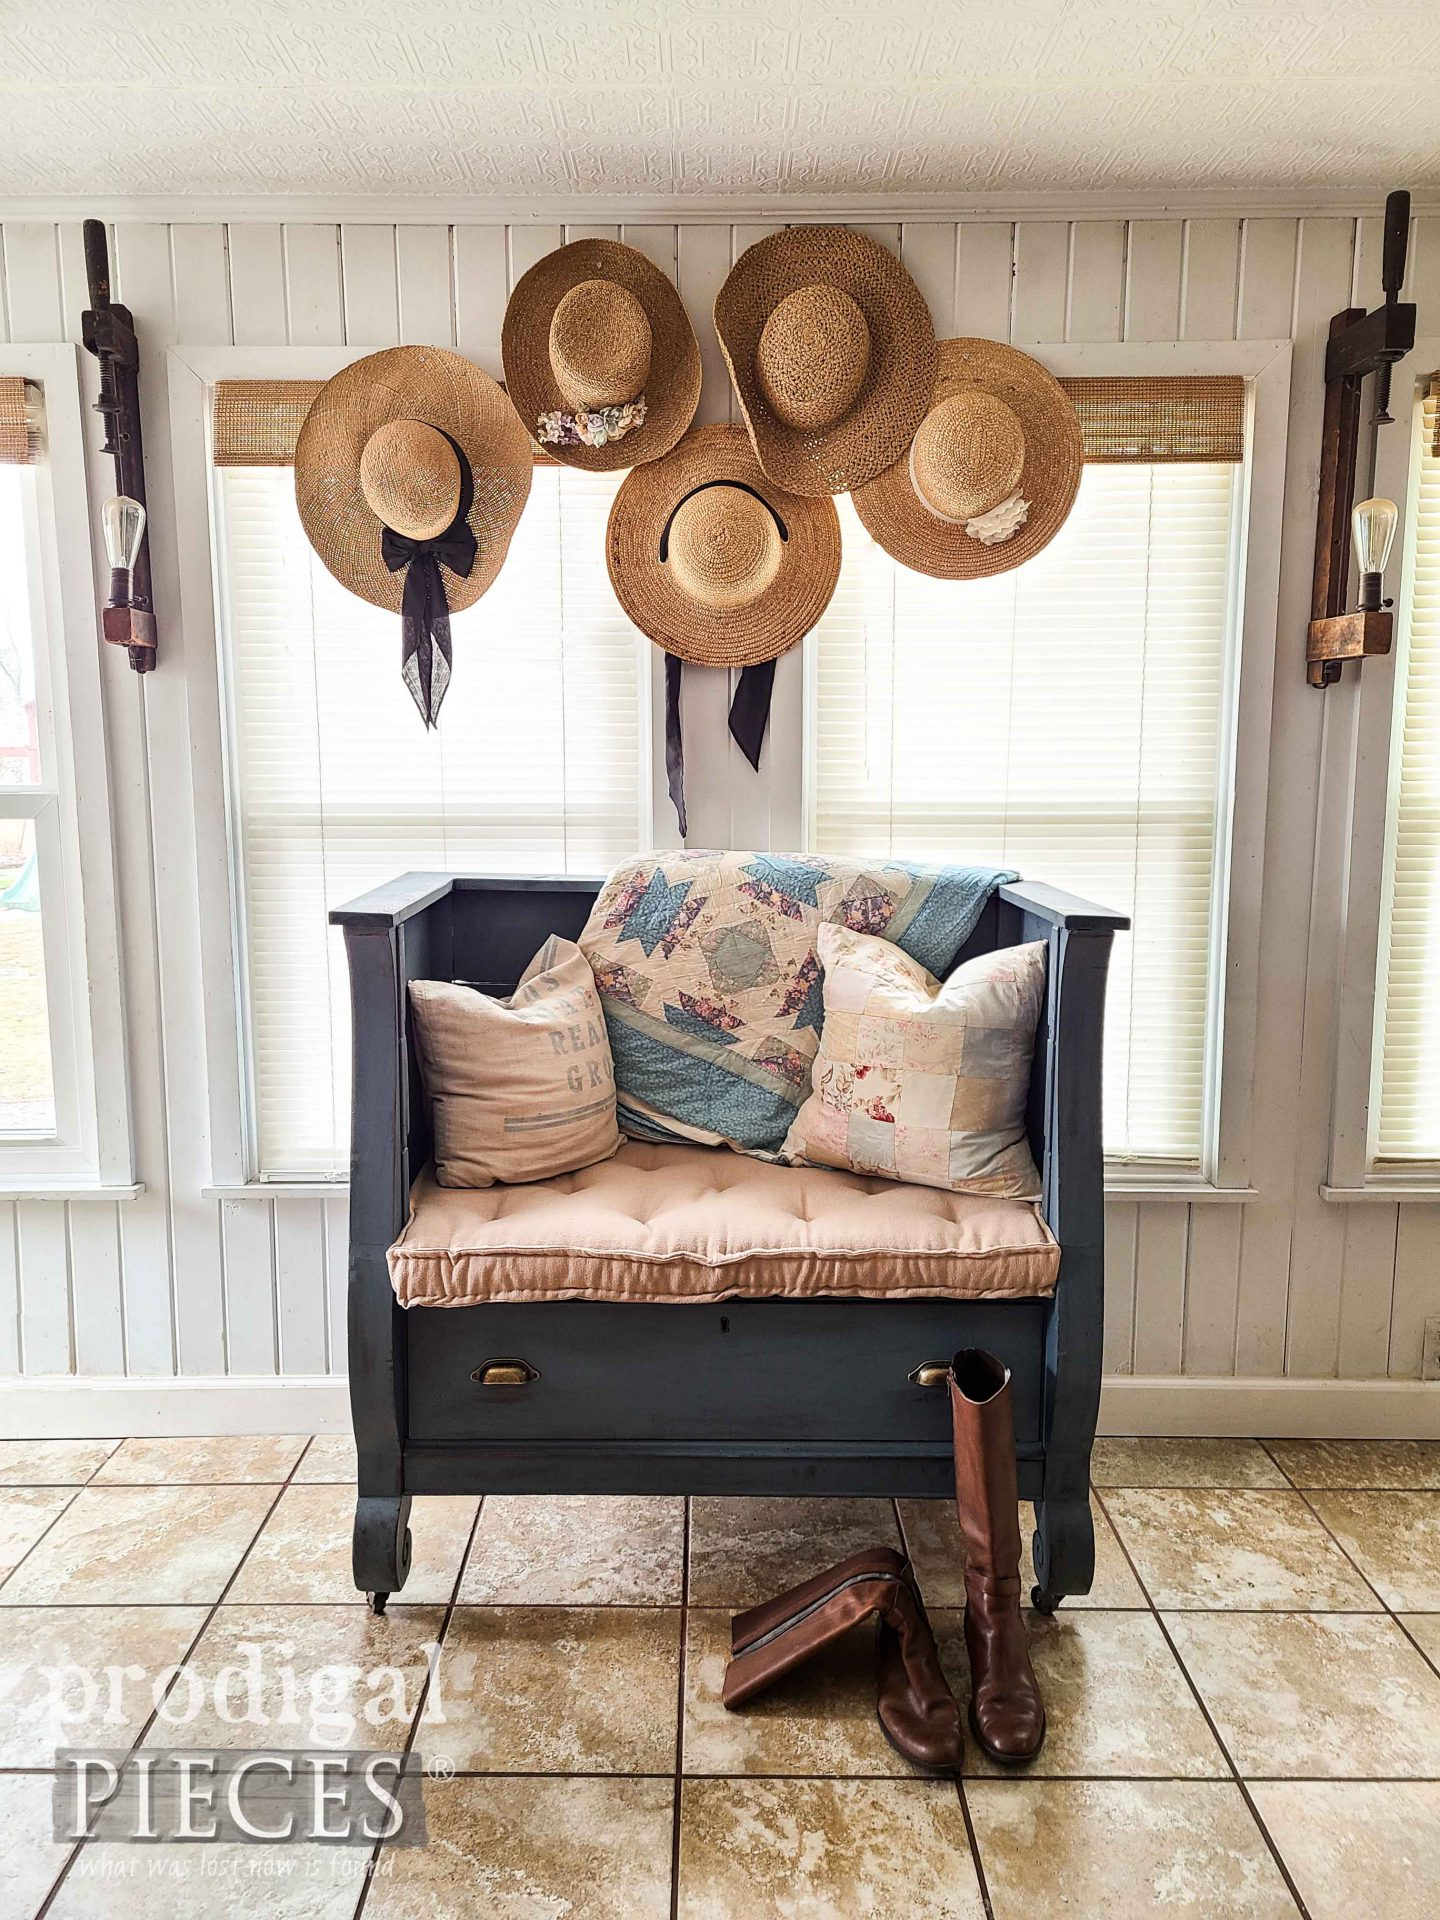 Repurposed Antique Empire Chest Repurposed into Upholstered Bench by Larissa of Prodigal Pieces | prodigalpieces.com #prodigalpieces #diy #upcycled #repurposed #home #homedecor #upholstery #furniture